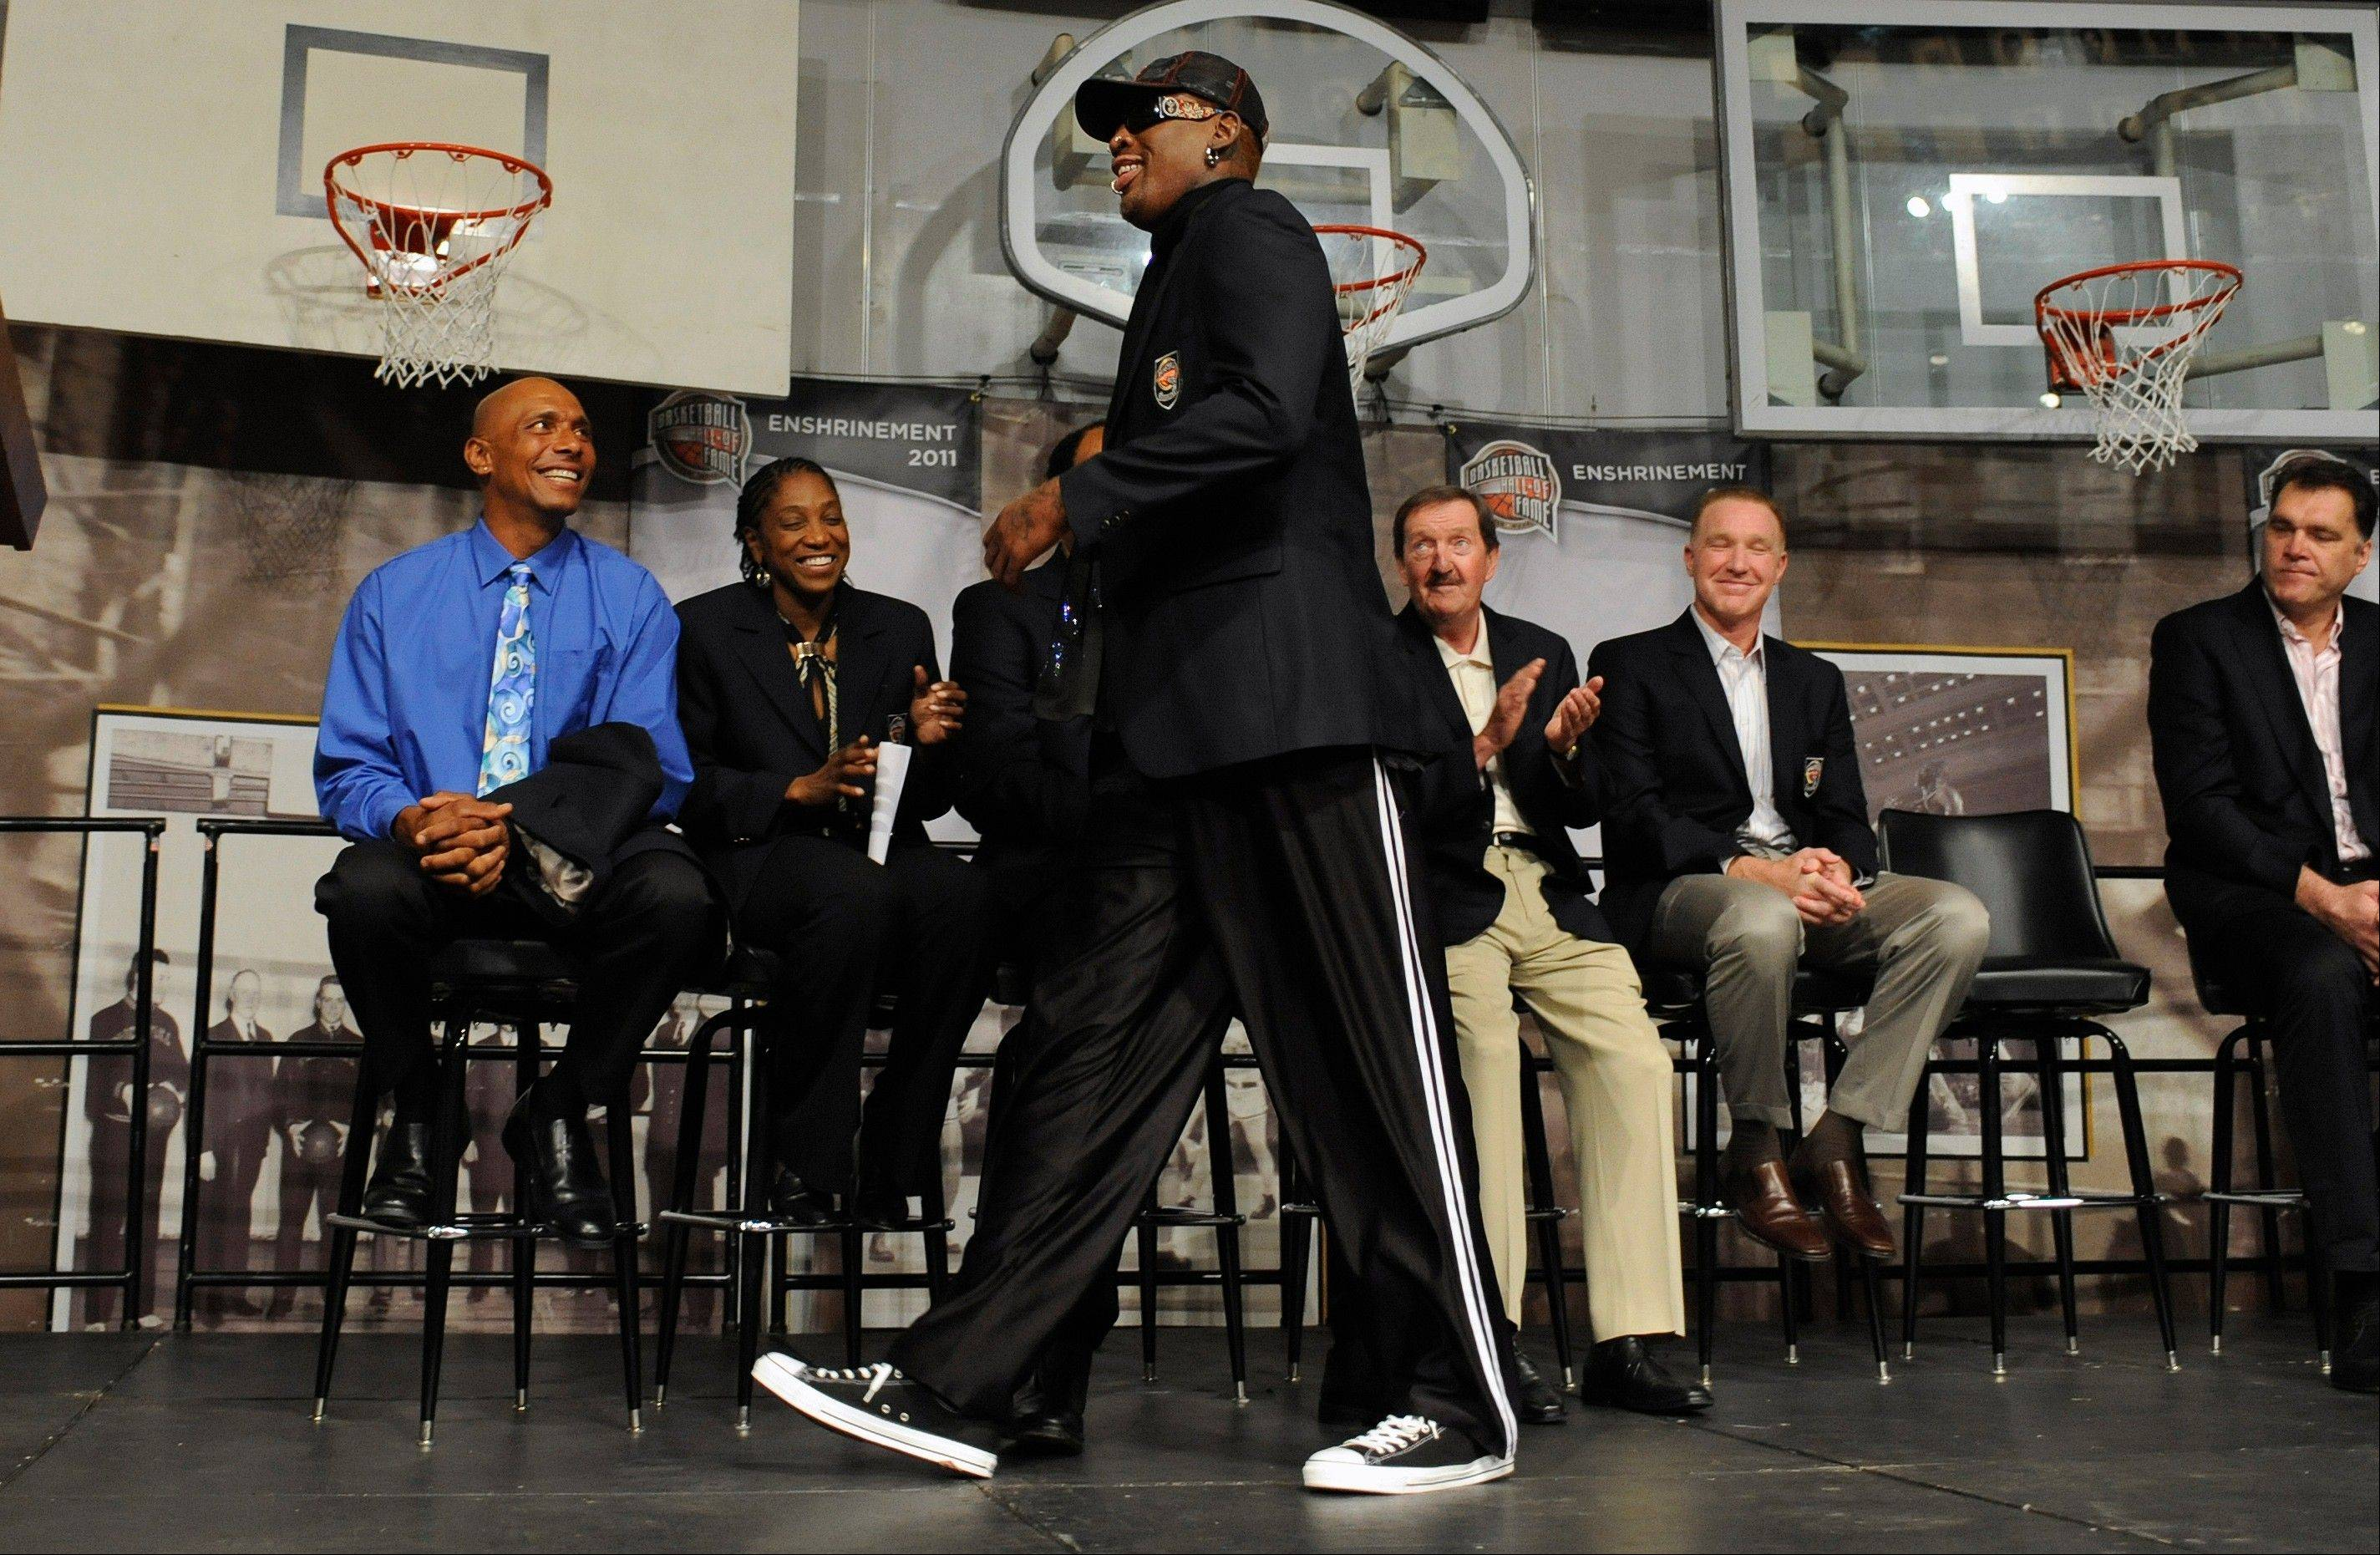 Dennis Rodman walks past fellow future inductees into the Basketball Hall of Fame during a news conference at the Naismith Memorial Basketball Hall of Fame in Springfield, Mass., Thursday, Aug. 11, 2011.